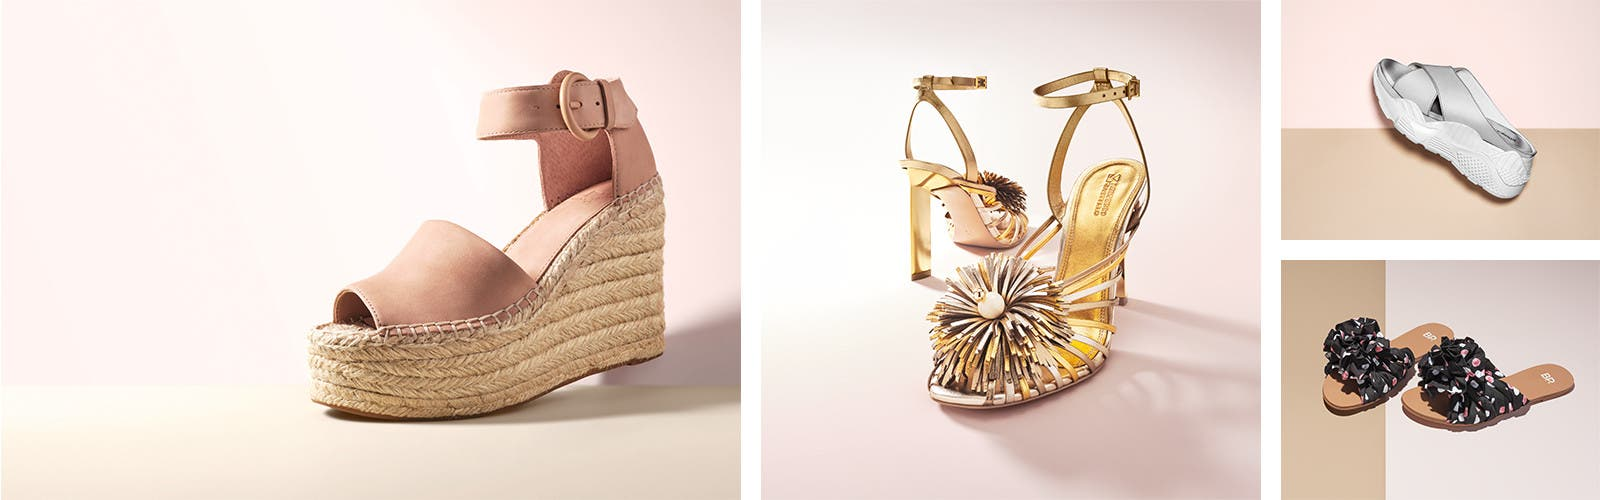 Sun. Sandals. So Ready. Spring-welcoming styles in every heel height.